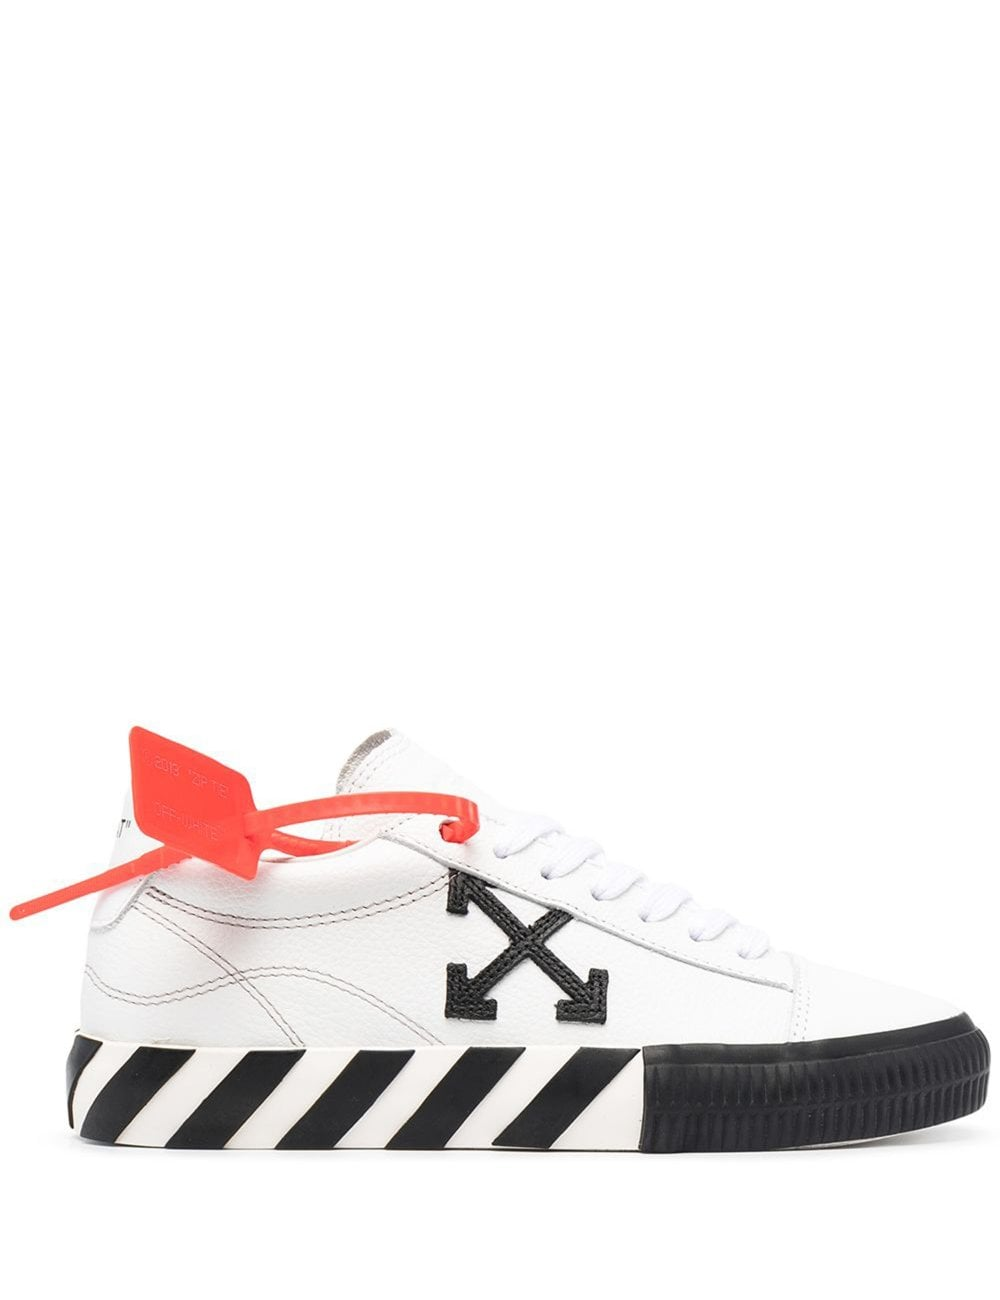 Off-White Low tops OFF-WHITE WOMEN'S VULCANIZED LOW TOP SNEAKER WHITE BLACK COLOUR: